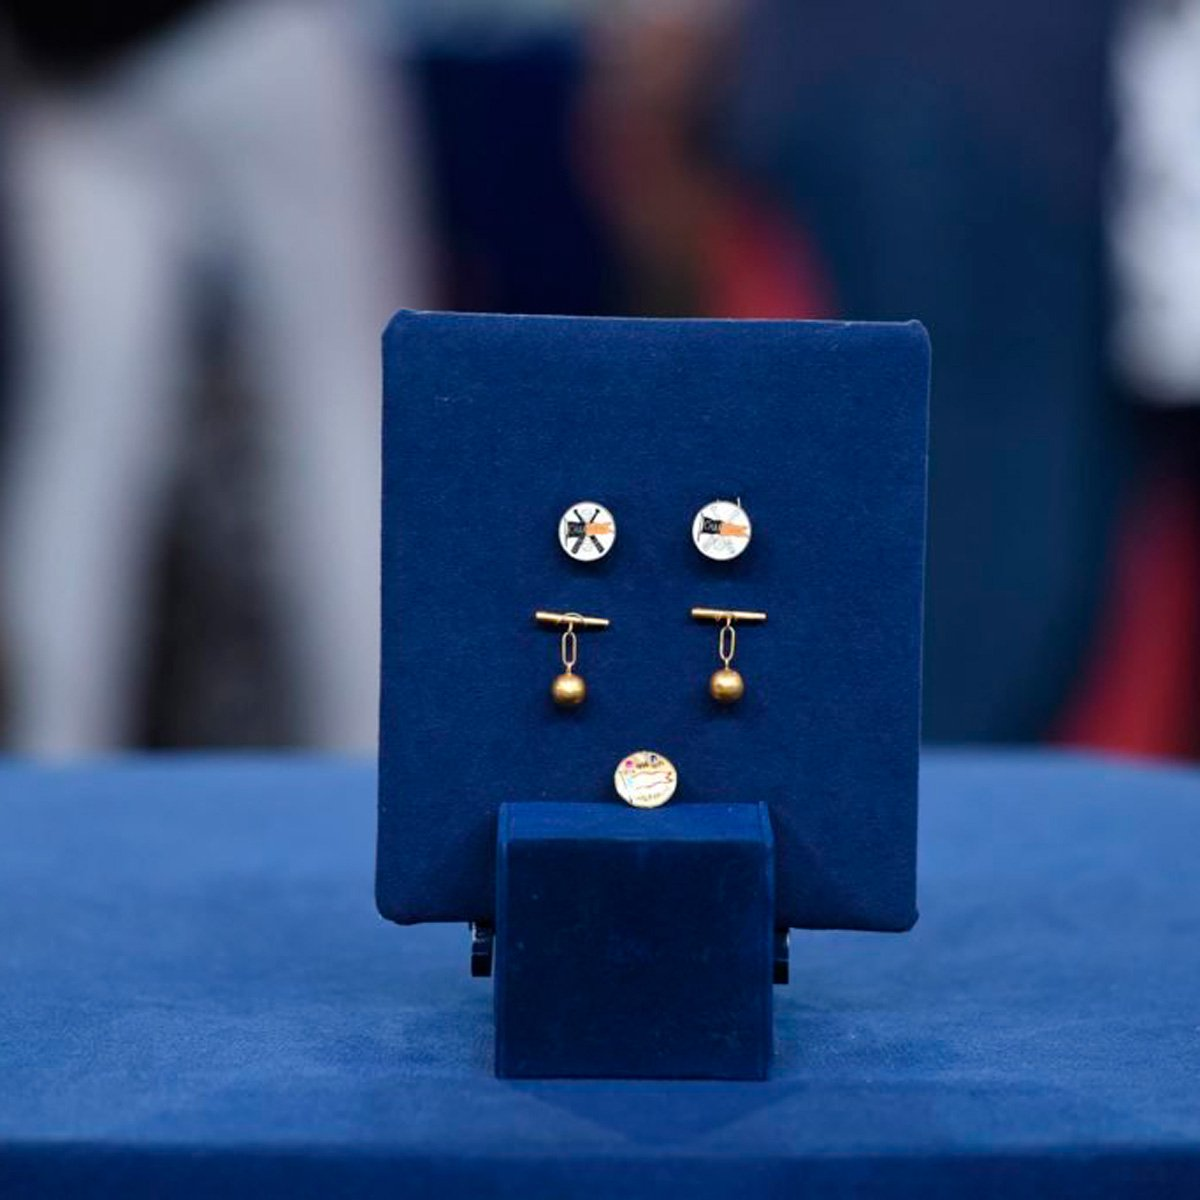 The most valuable finds in Antiques Roadshow history.